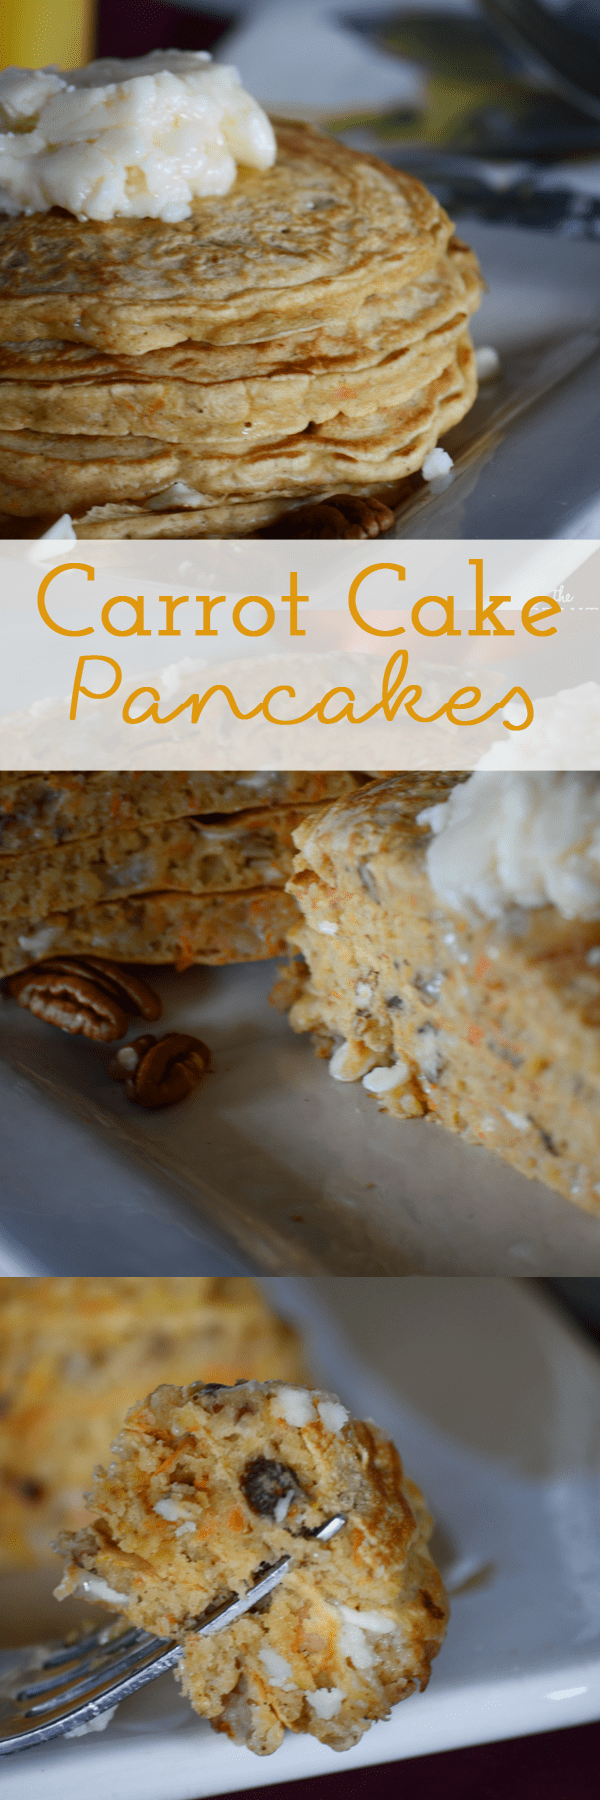 Delicious carrot cake pancakes make with white chocolate chips, walnuts and raisins! Oh and topped with cream cheese frosting!  Frosting on pancakes!